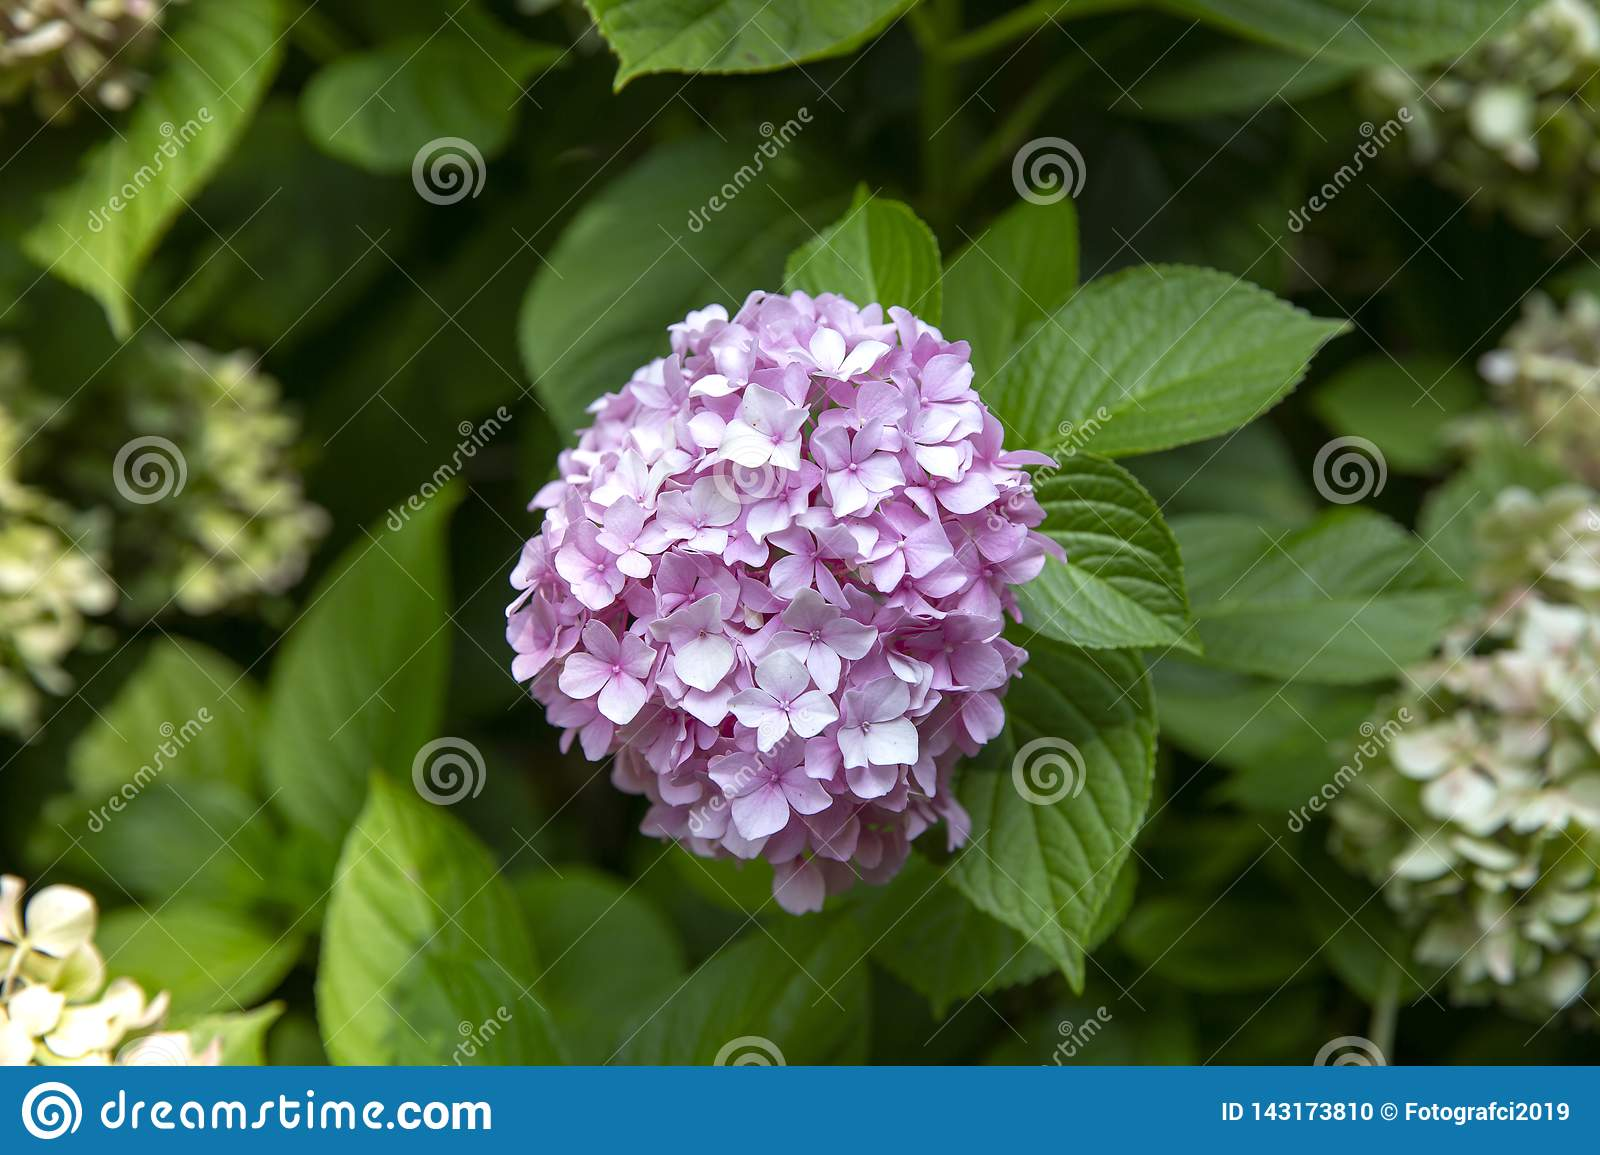 Blooming Hydrangea Plant in Springtime